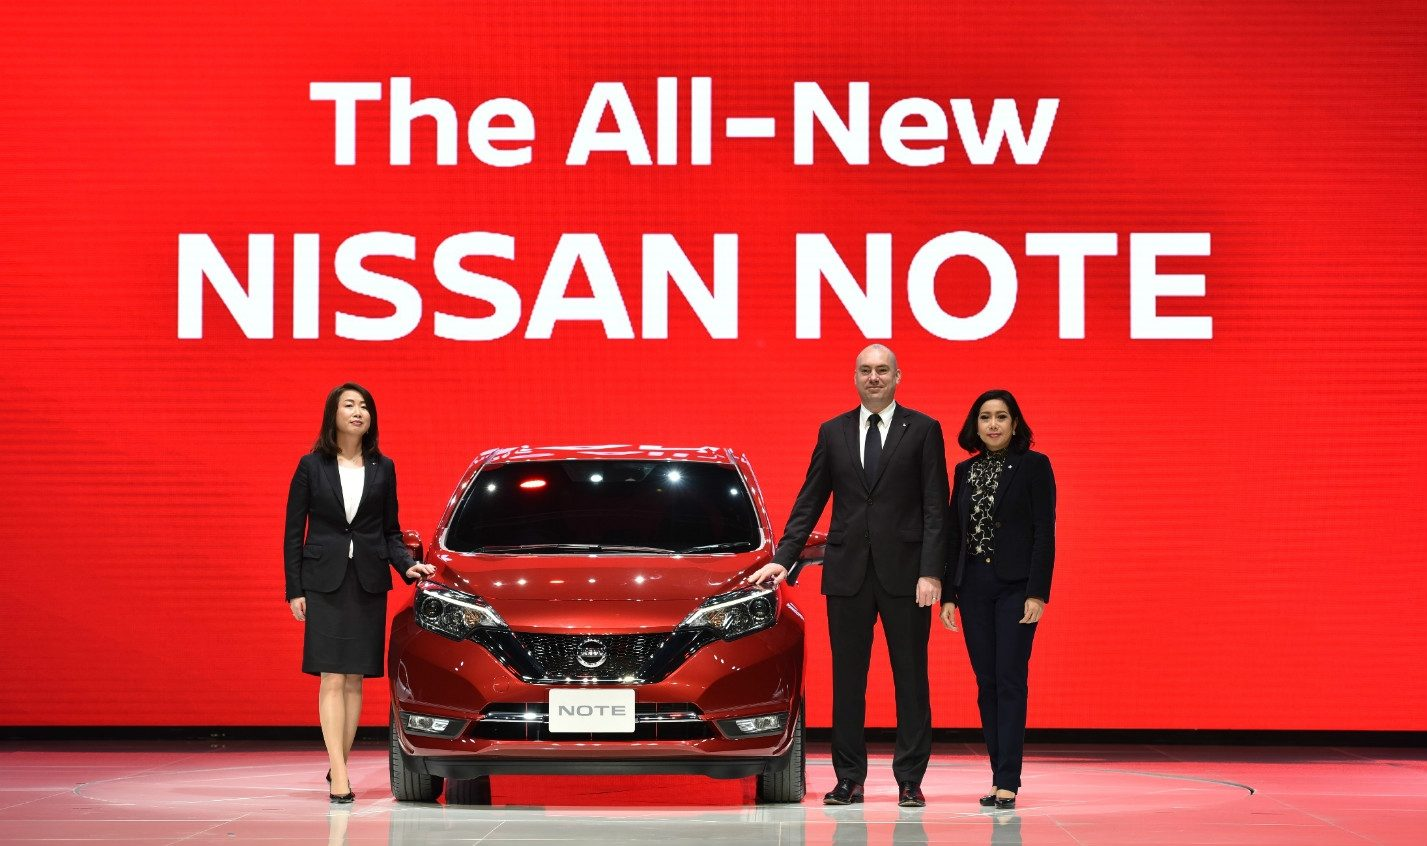 the-all-new-nissan-note